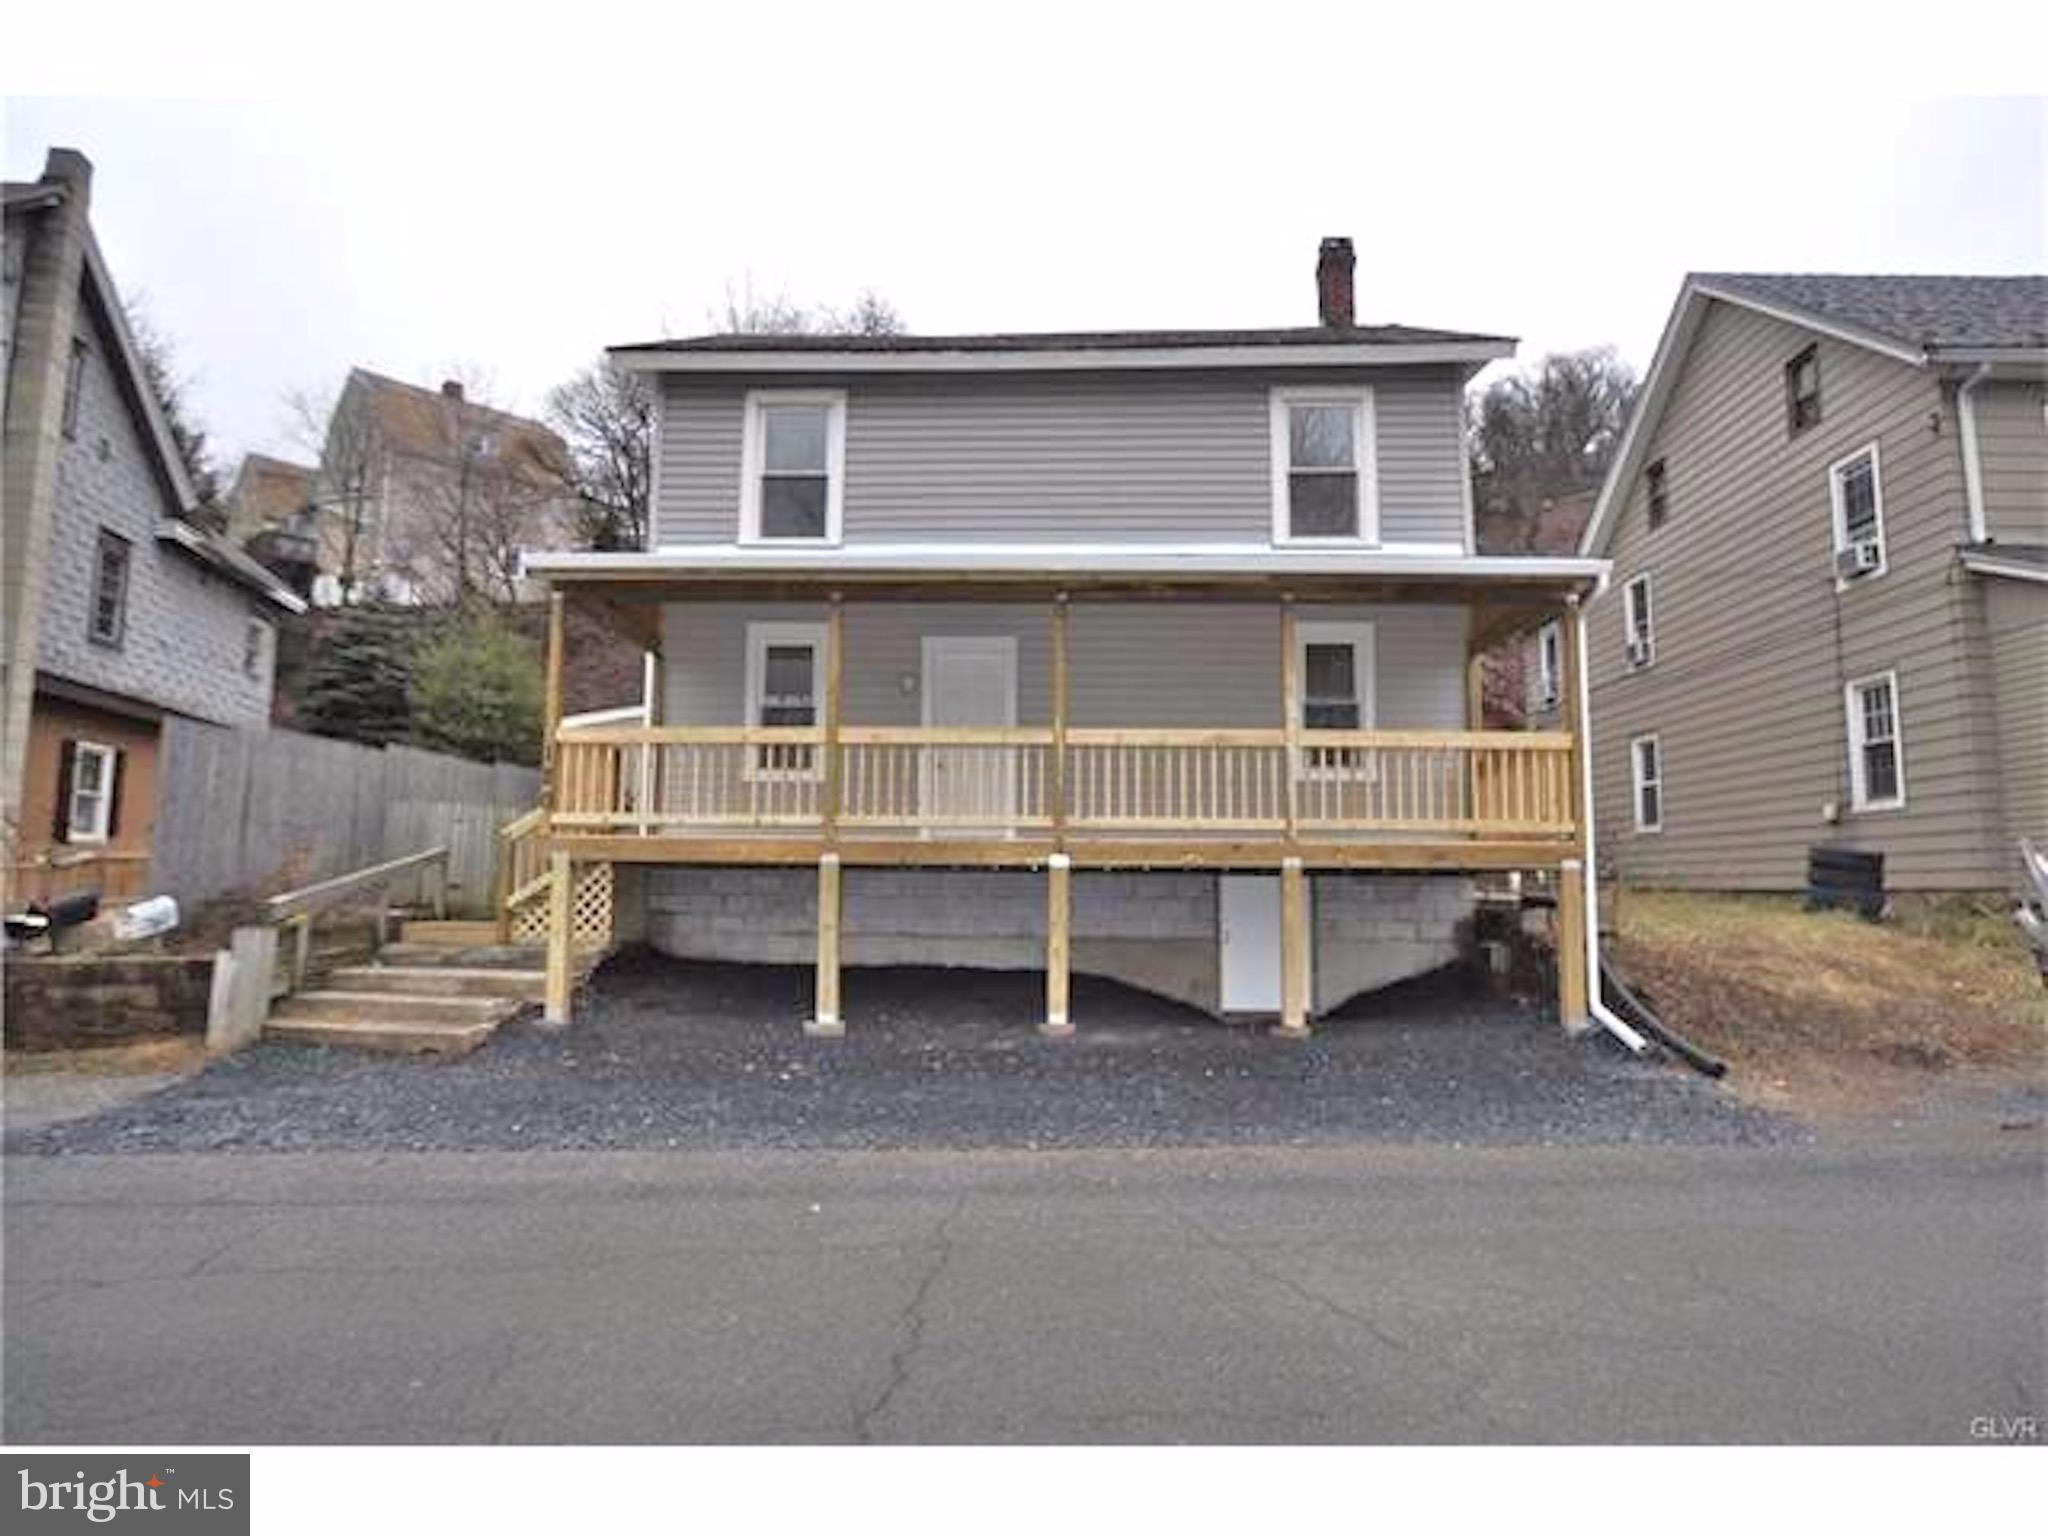 120 RED HILL ROAD, PALMERTON, PA 18071